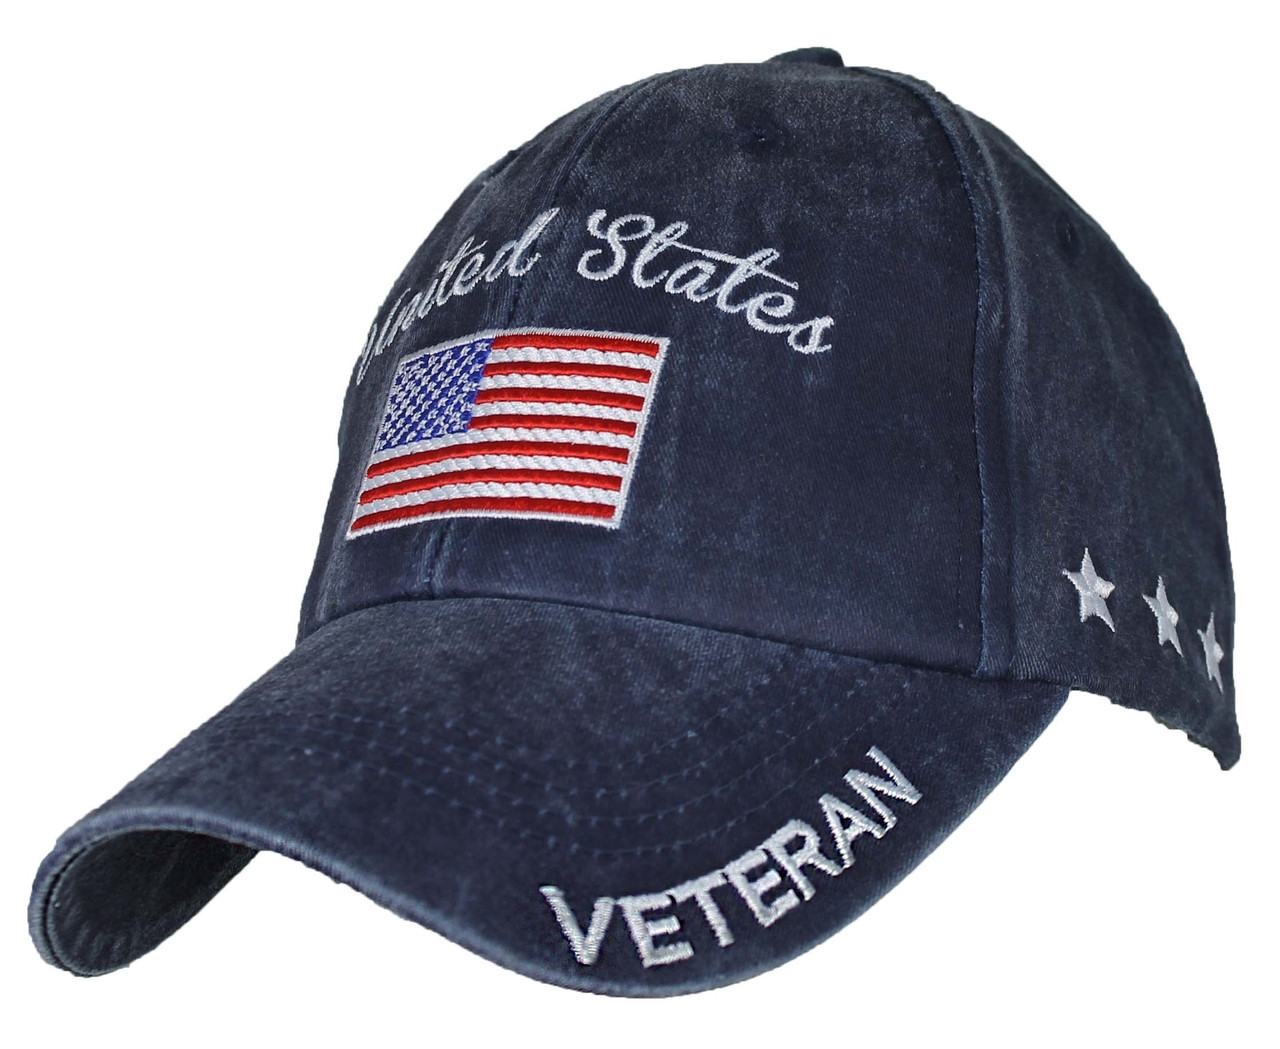 511150c5c28 ... where can i buy us military veteran u.s. military with flag washed navy  blue baseball cap